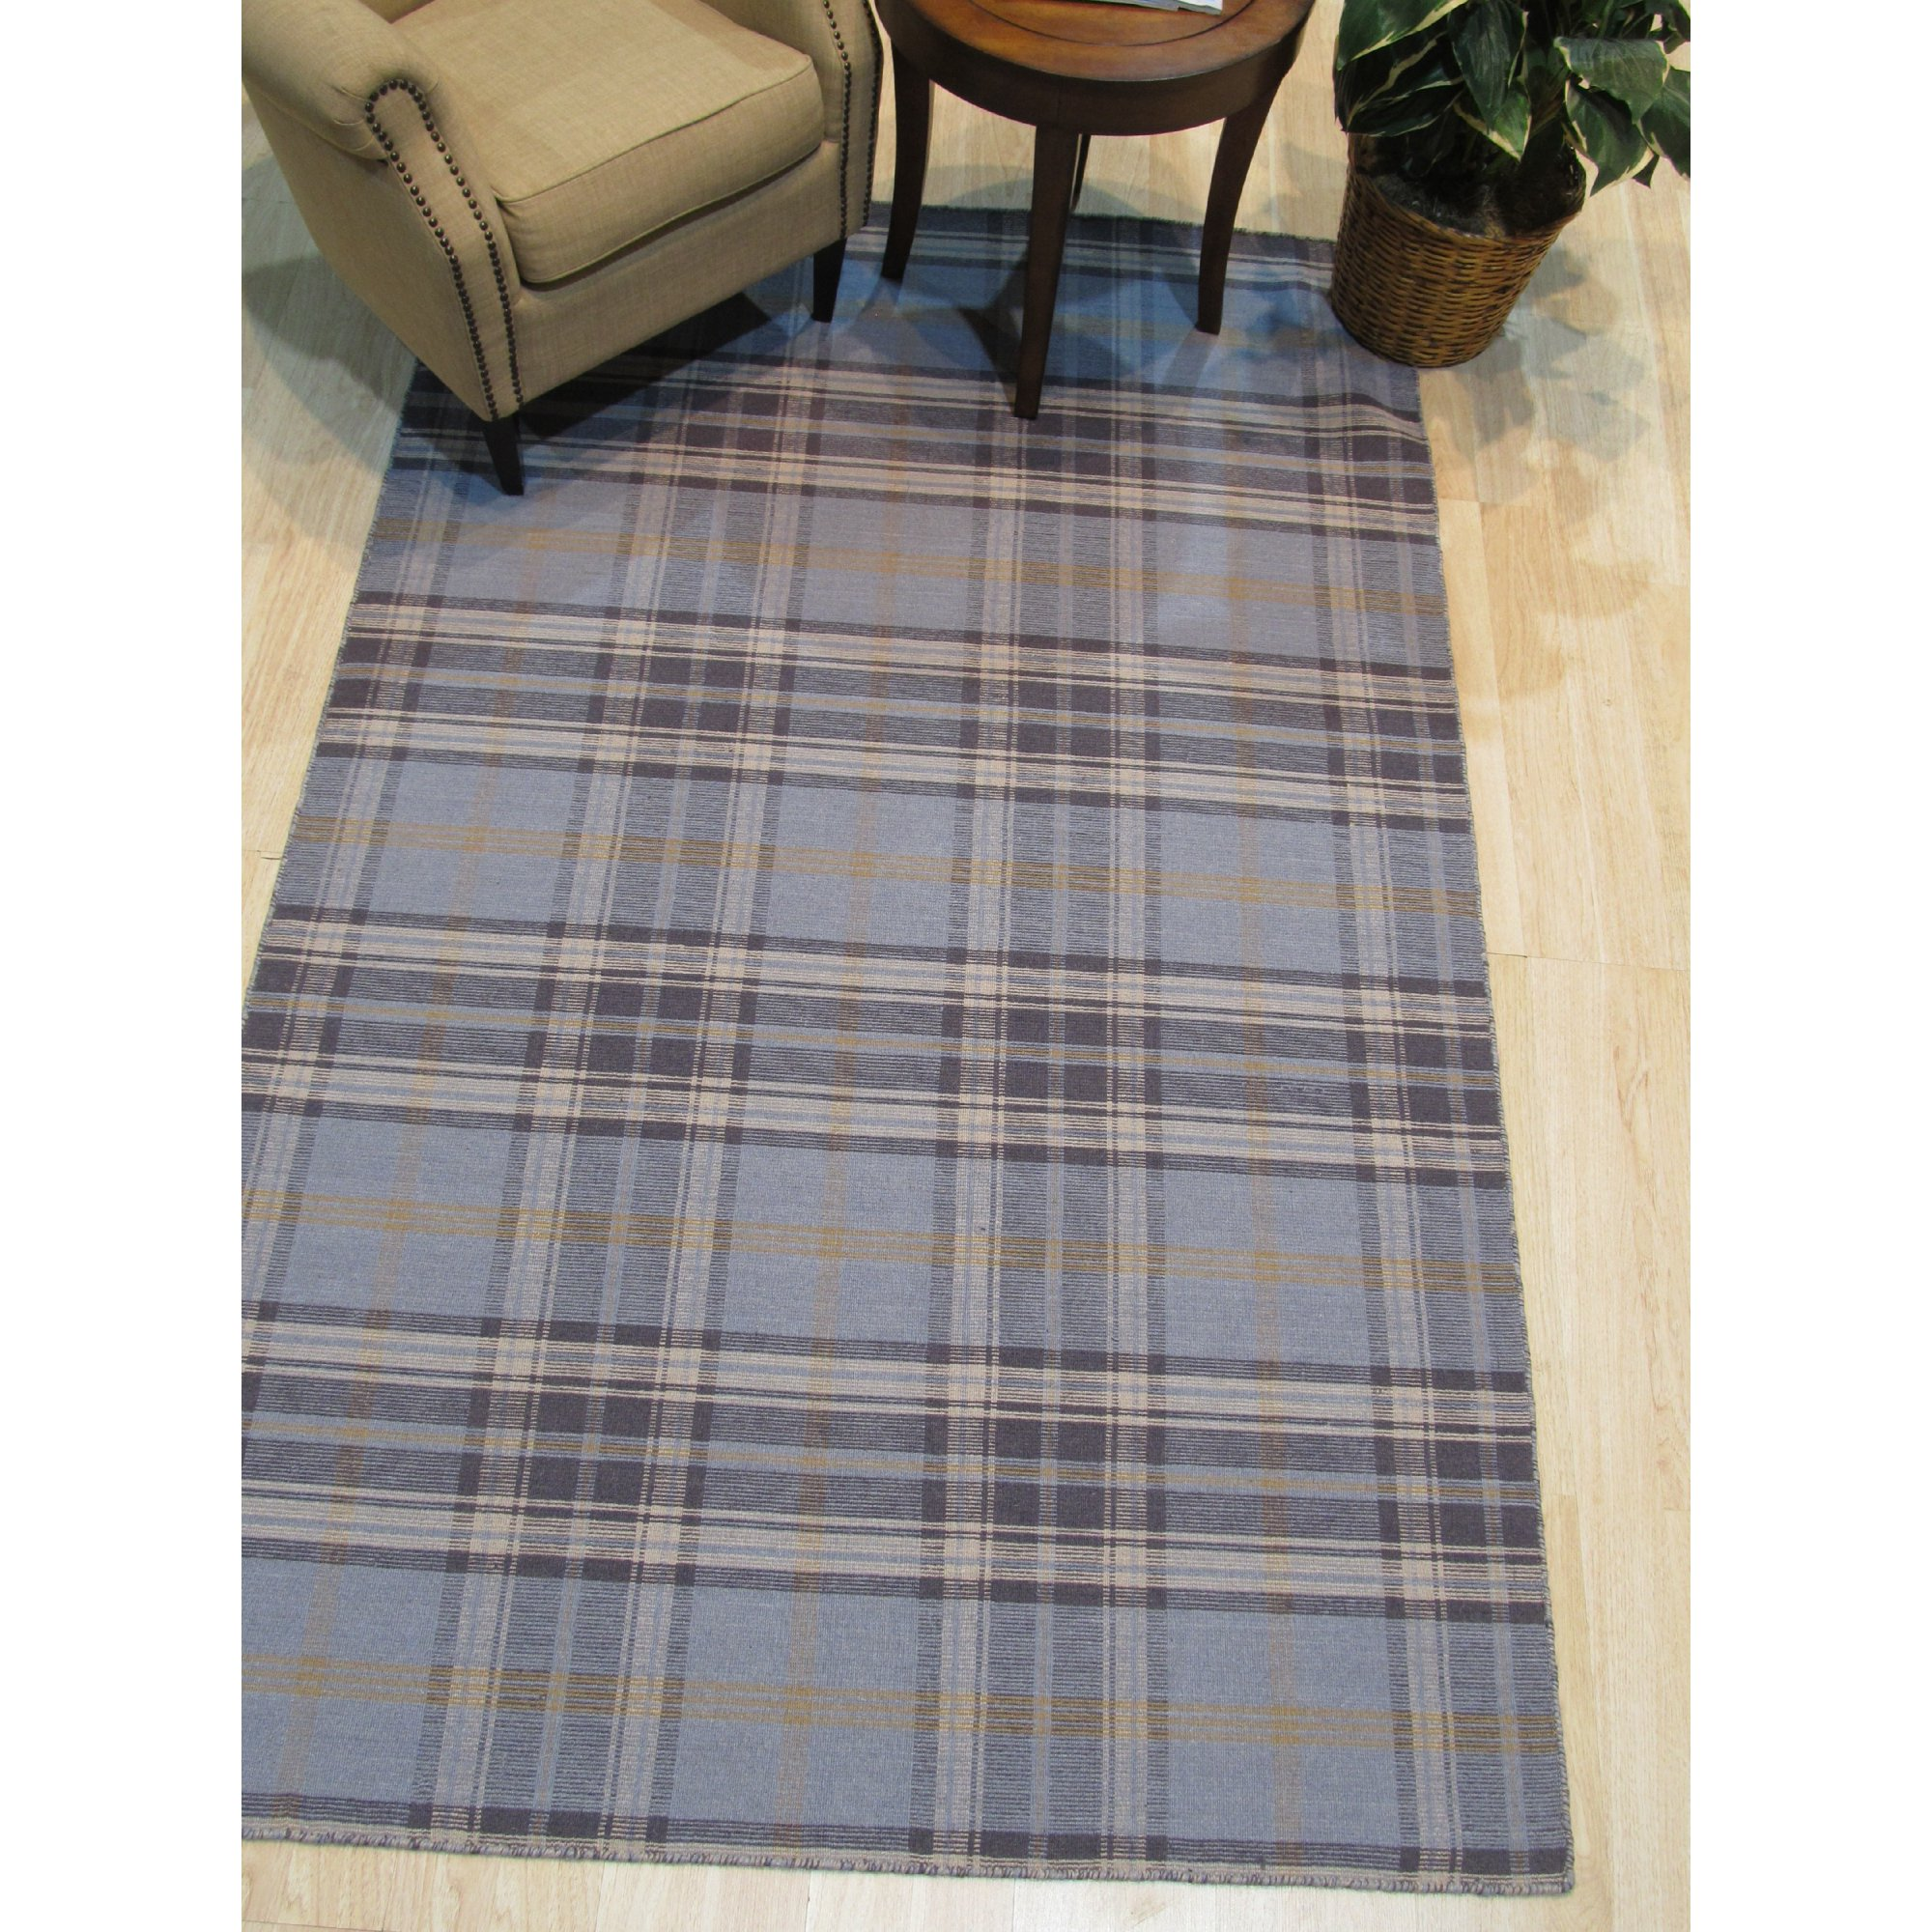 Blue Navy Plaid Handmade Wool Rug Walmart Canada